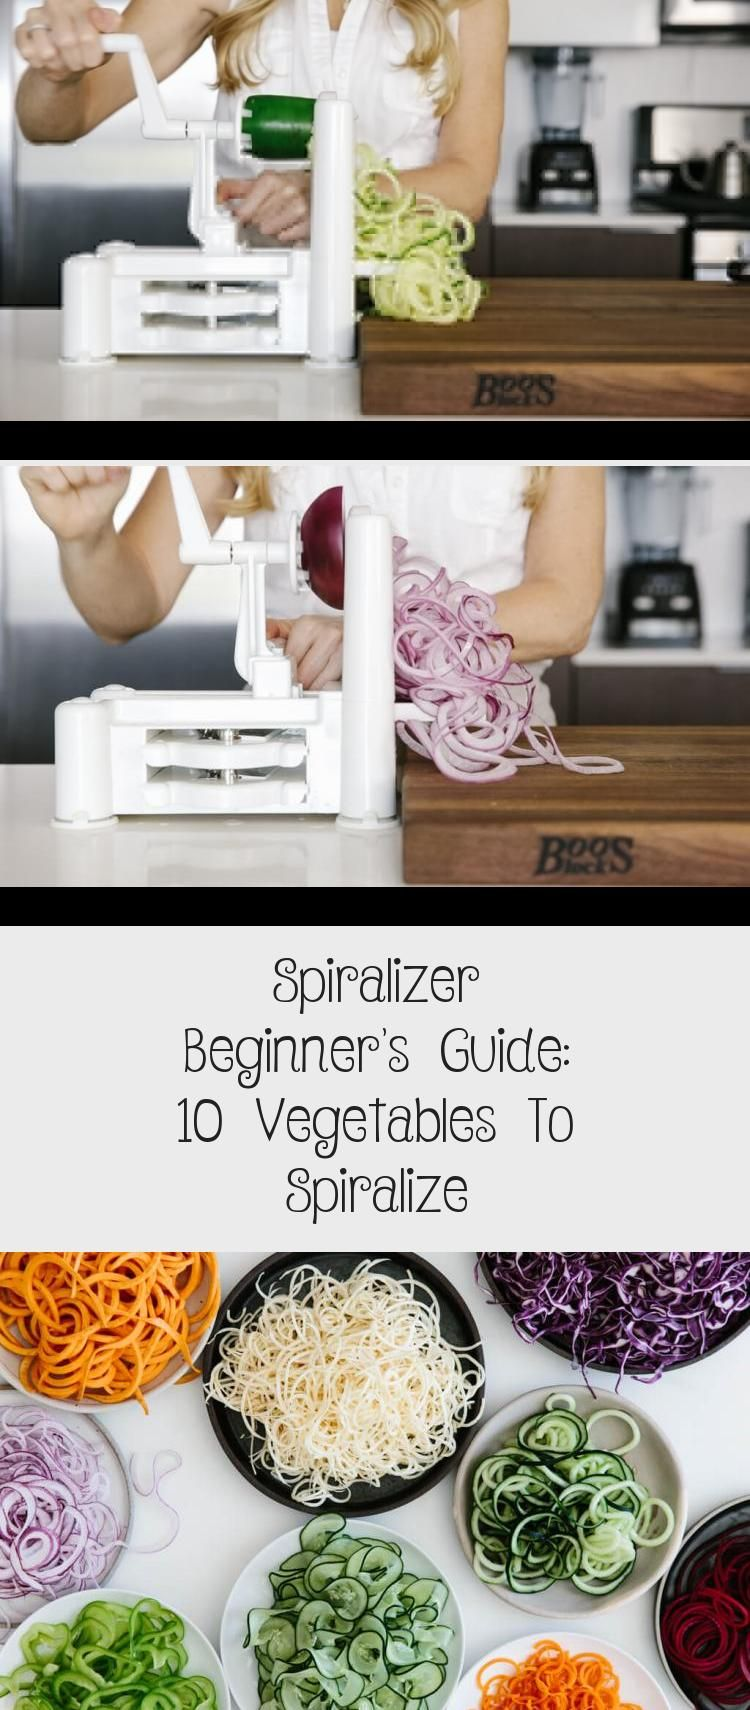 Spiralizer Beginner's Guide: 10 Vegetables To Spiralize The spiralizer is one of my favorite kitchen tools. Today I'm sharing my favorite vegetables to spiralize along with veggie spiralizer tips and healthy spiralizer recipes. Learn how to spiralize - it's easy!